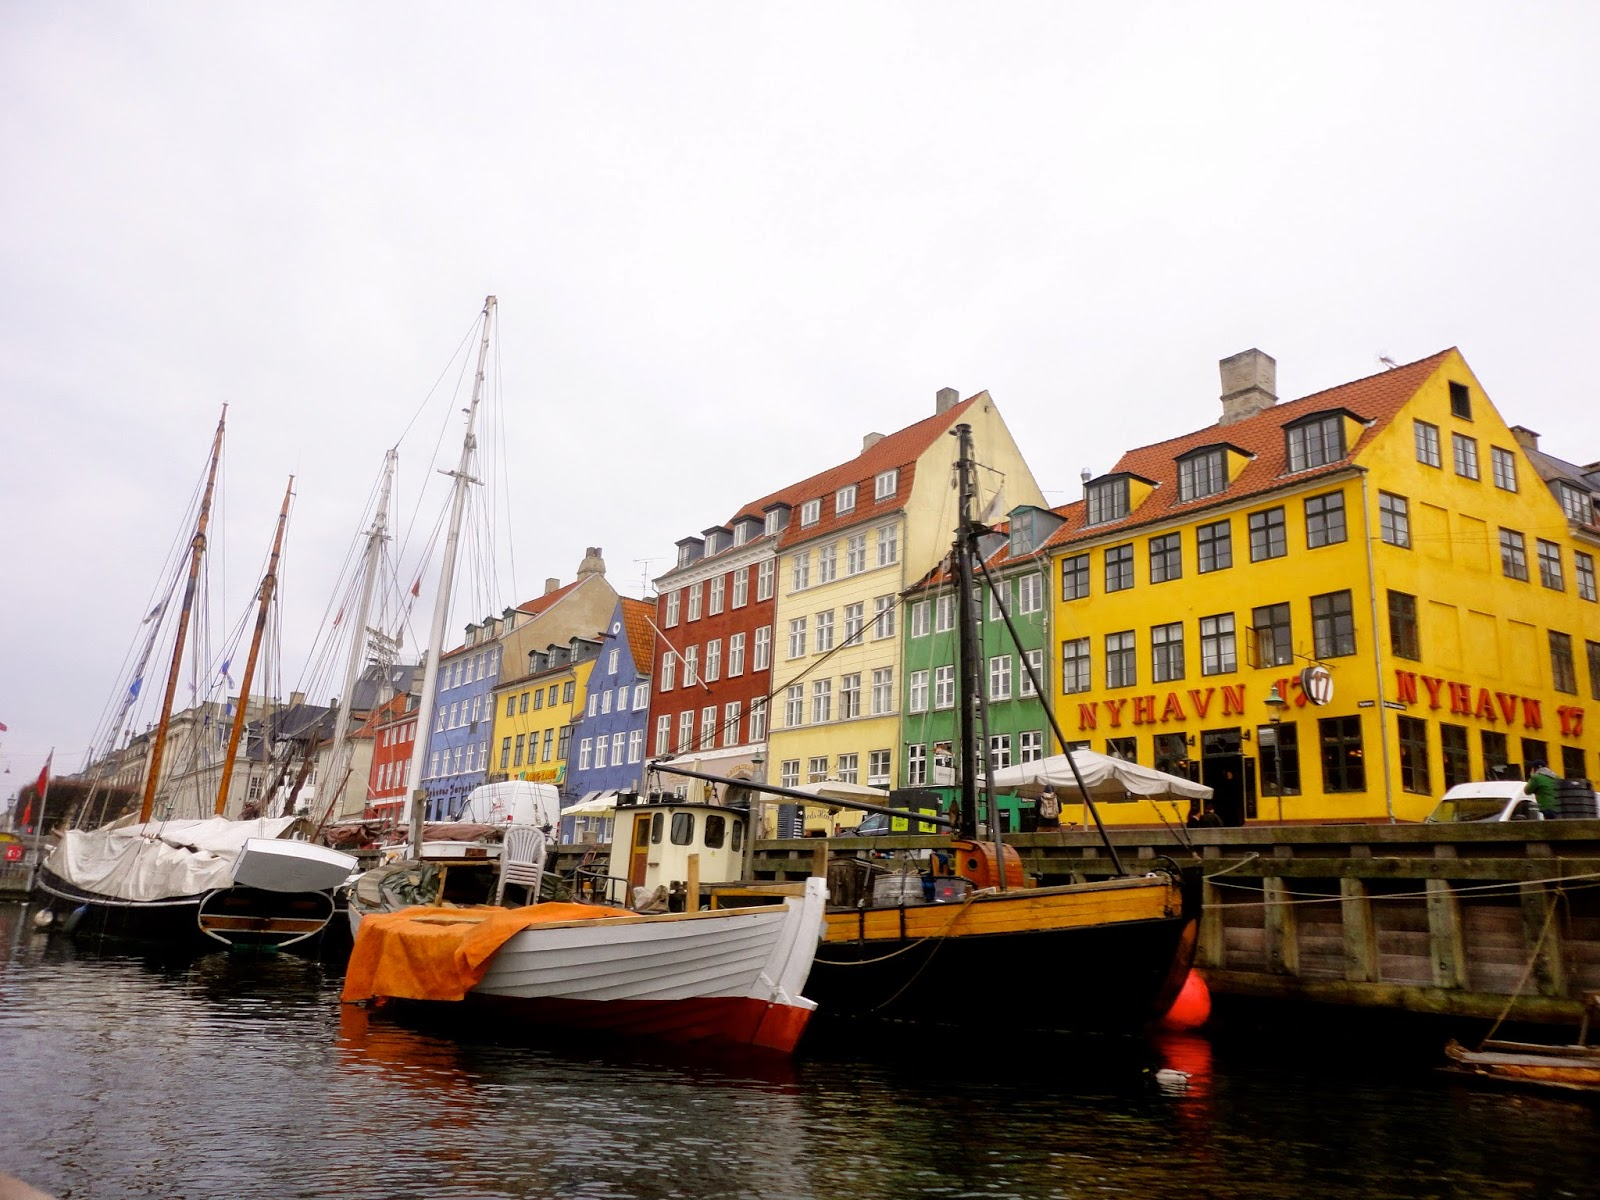 Nyhavn coloured houses on the harbour in Copenhagen